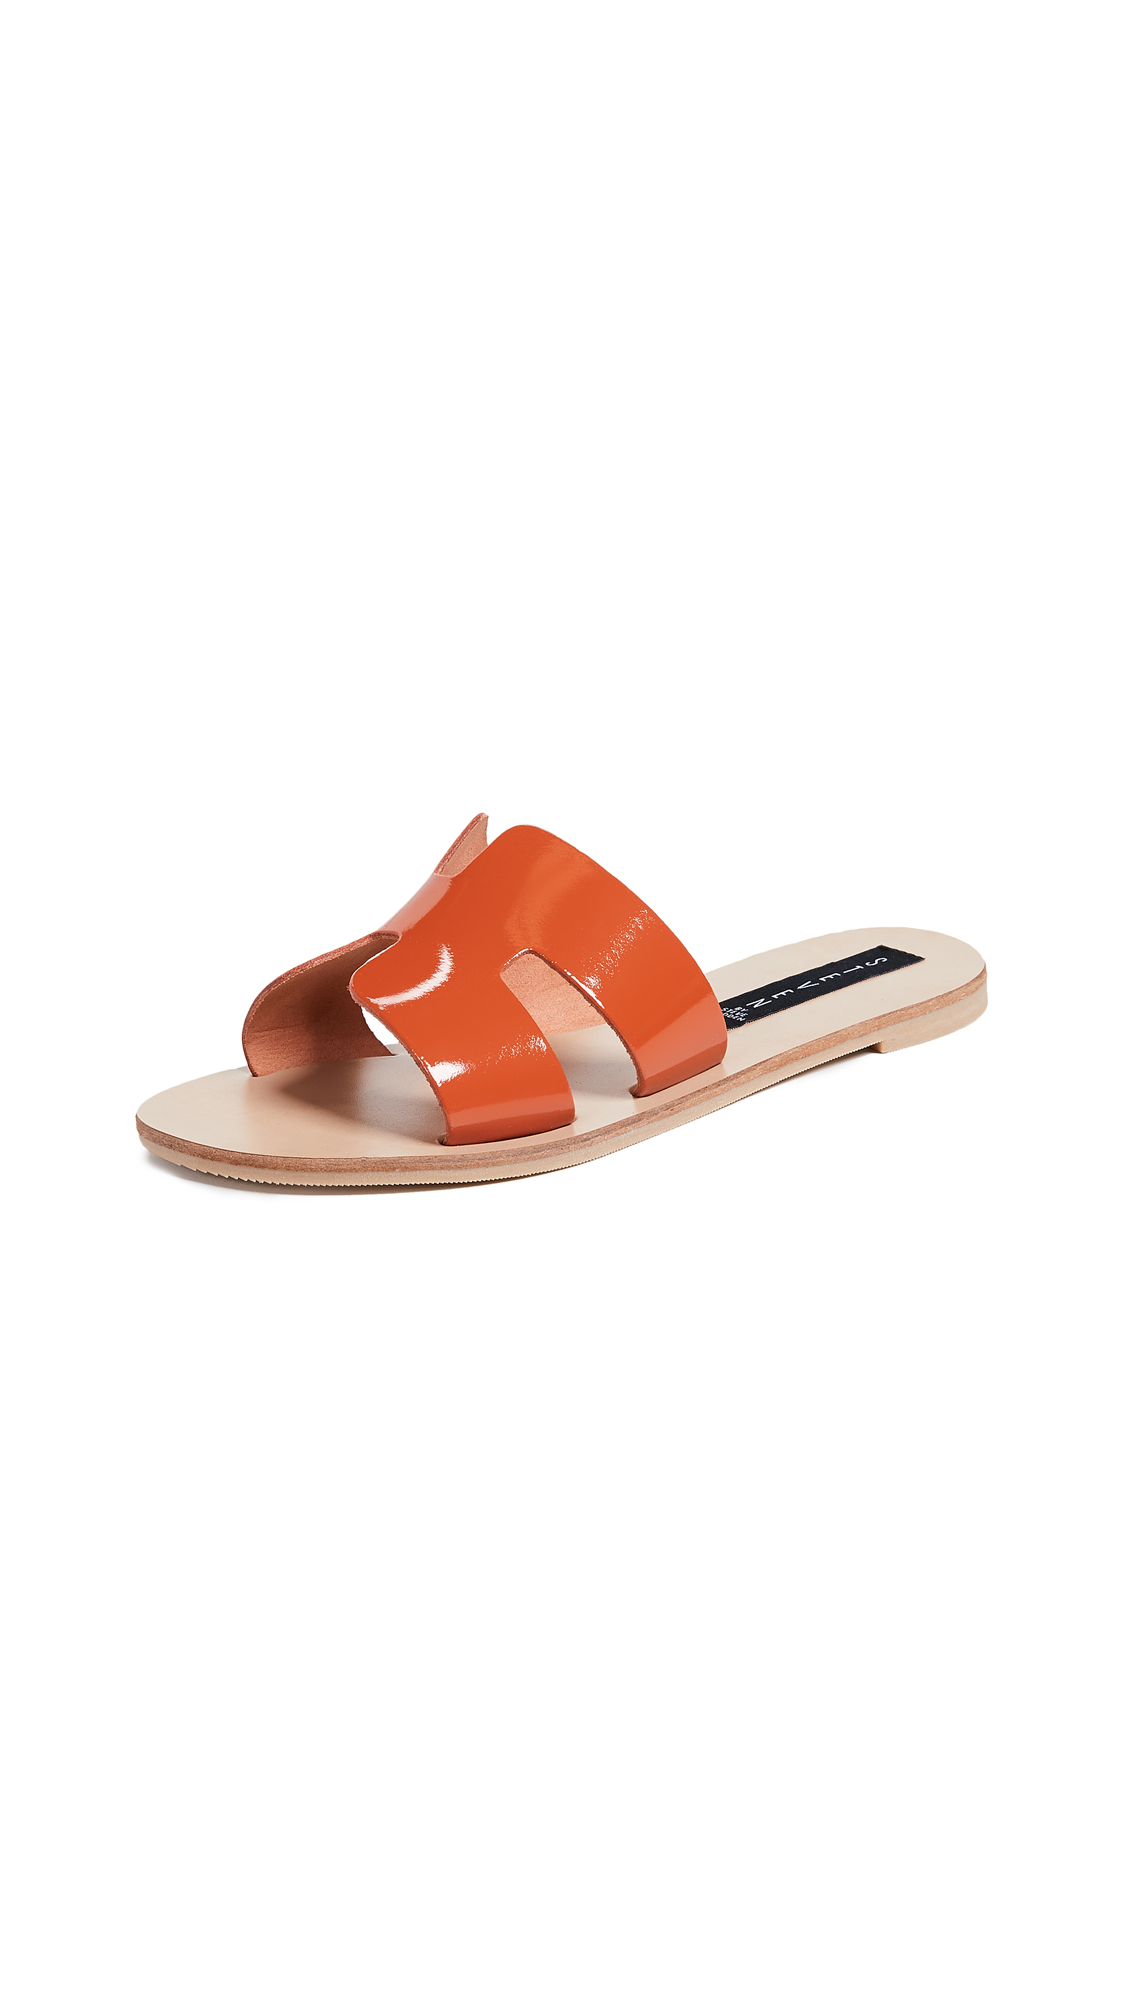 Steven Greece Slides - Neon Orange